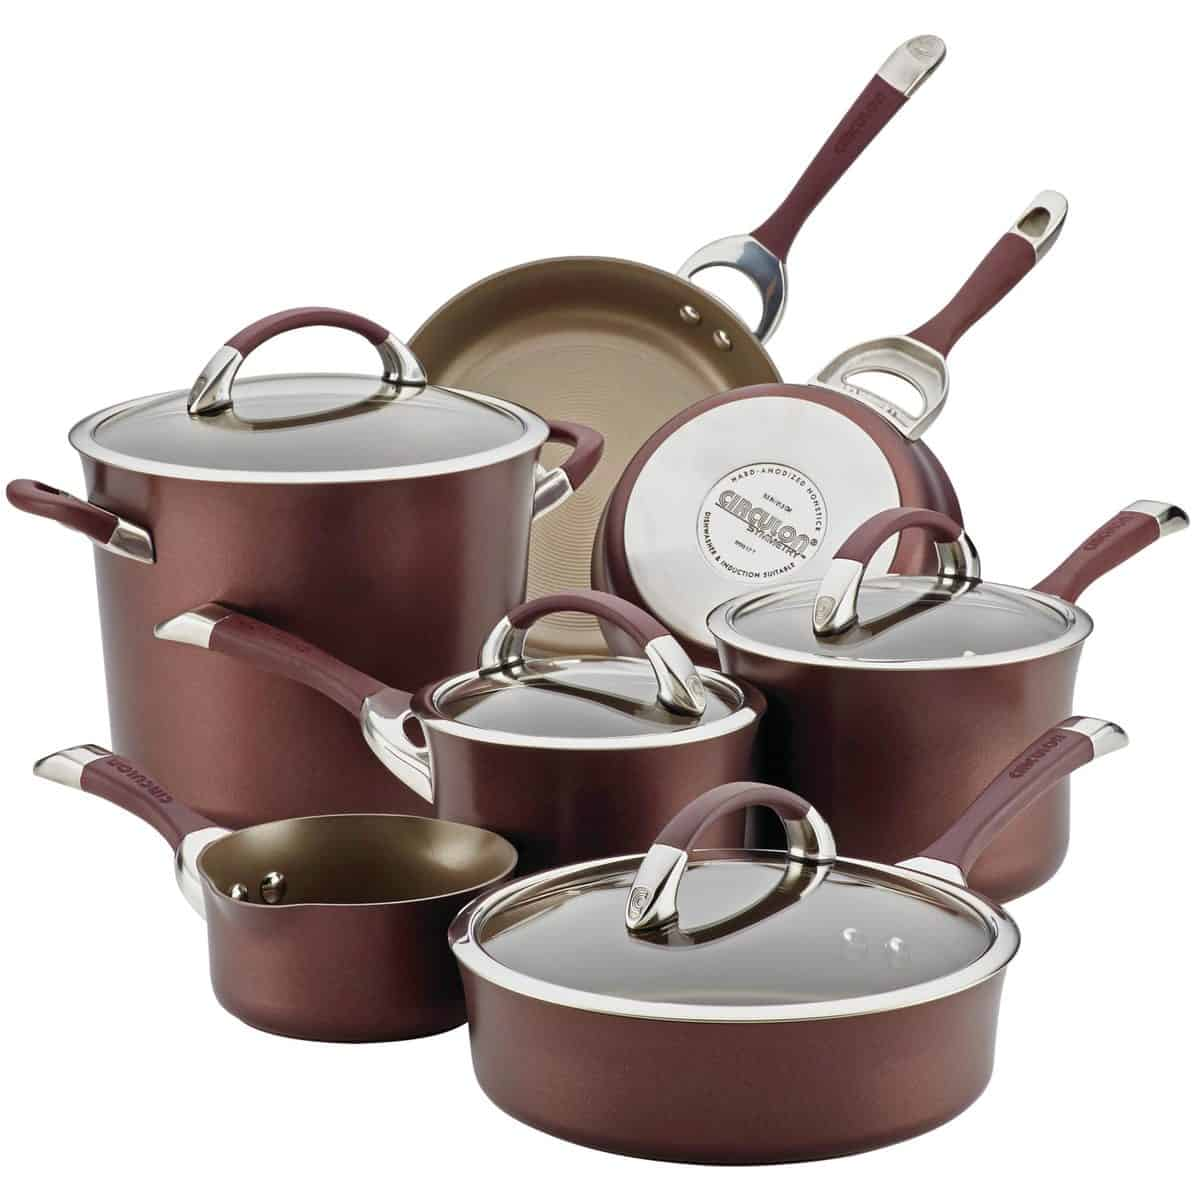 Circulon Symmetry Hard Anodized Nonstick 11-piece Cookware Set in Merlot color.